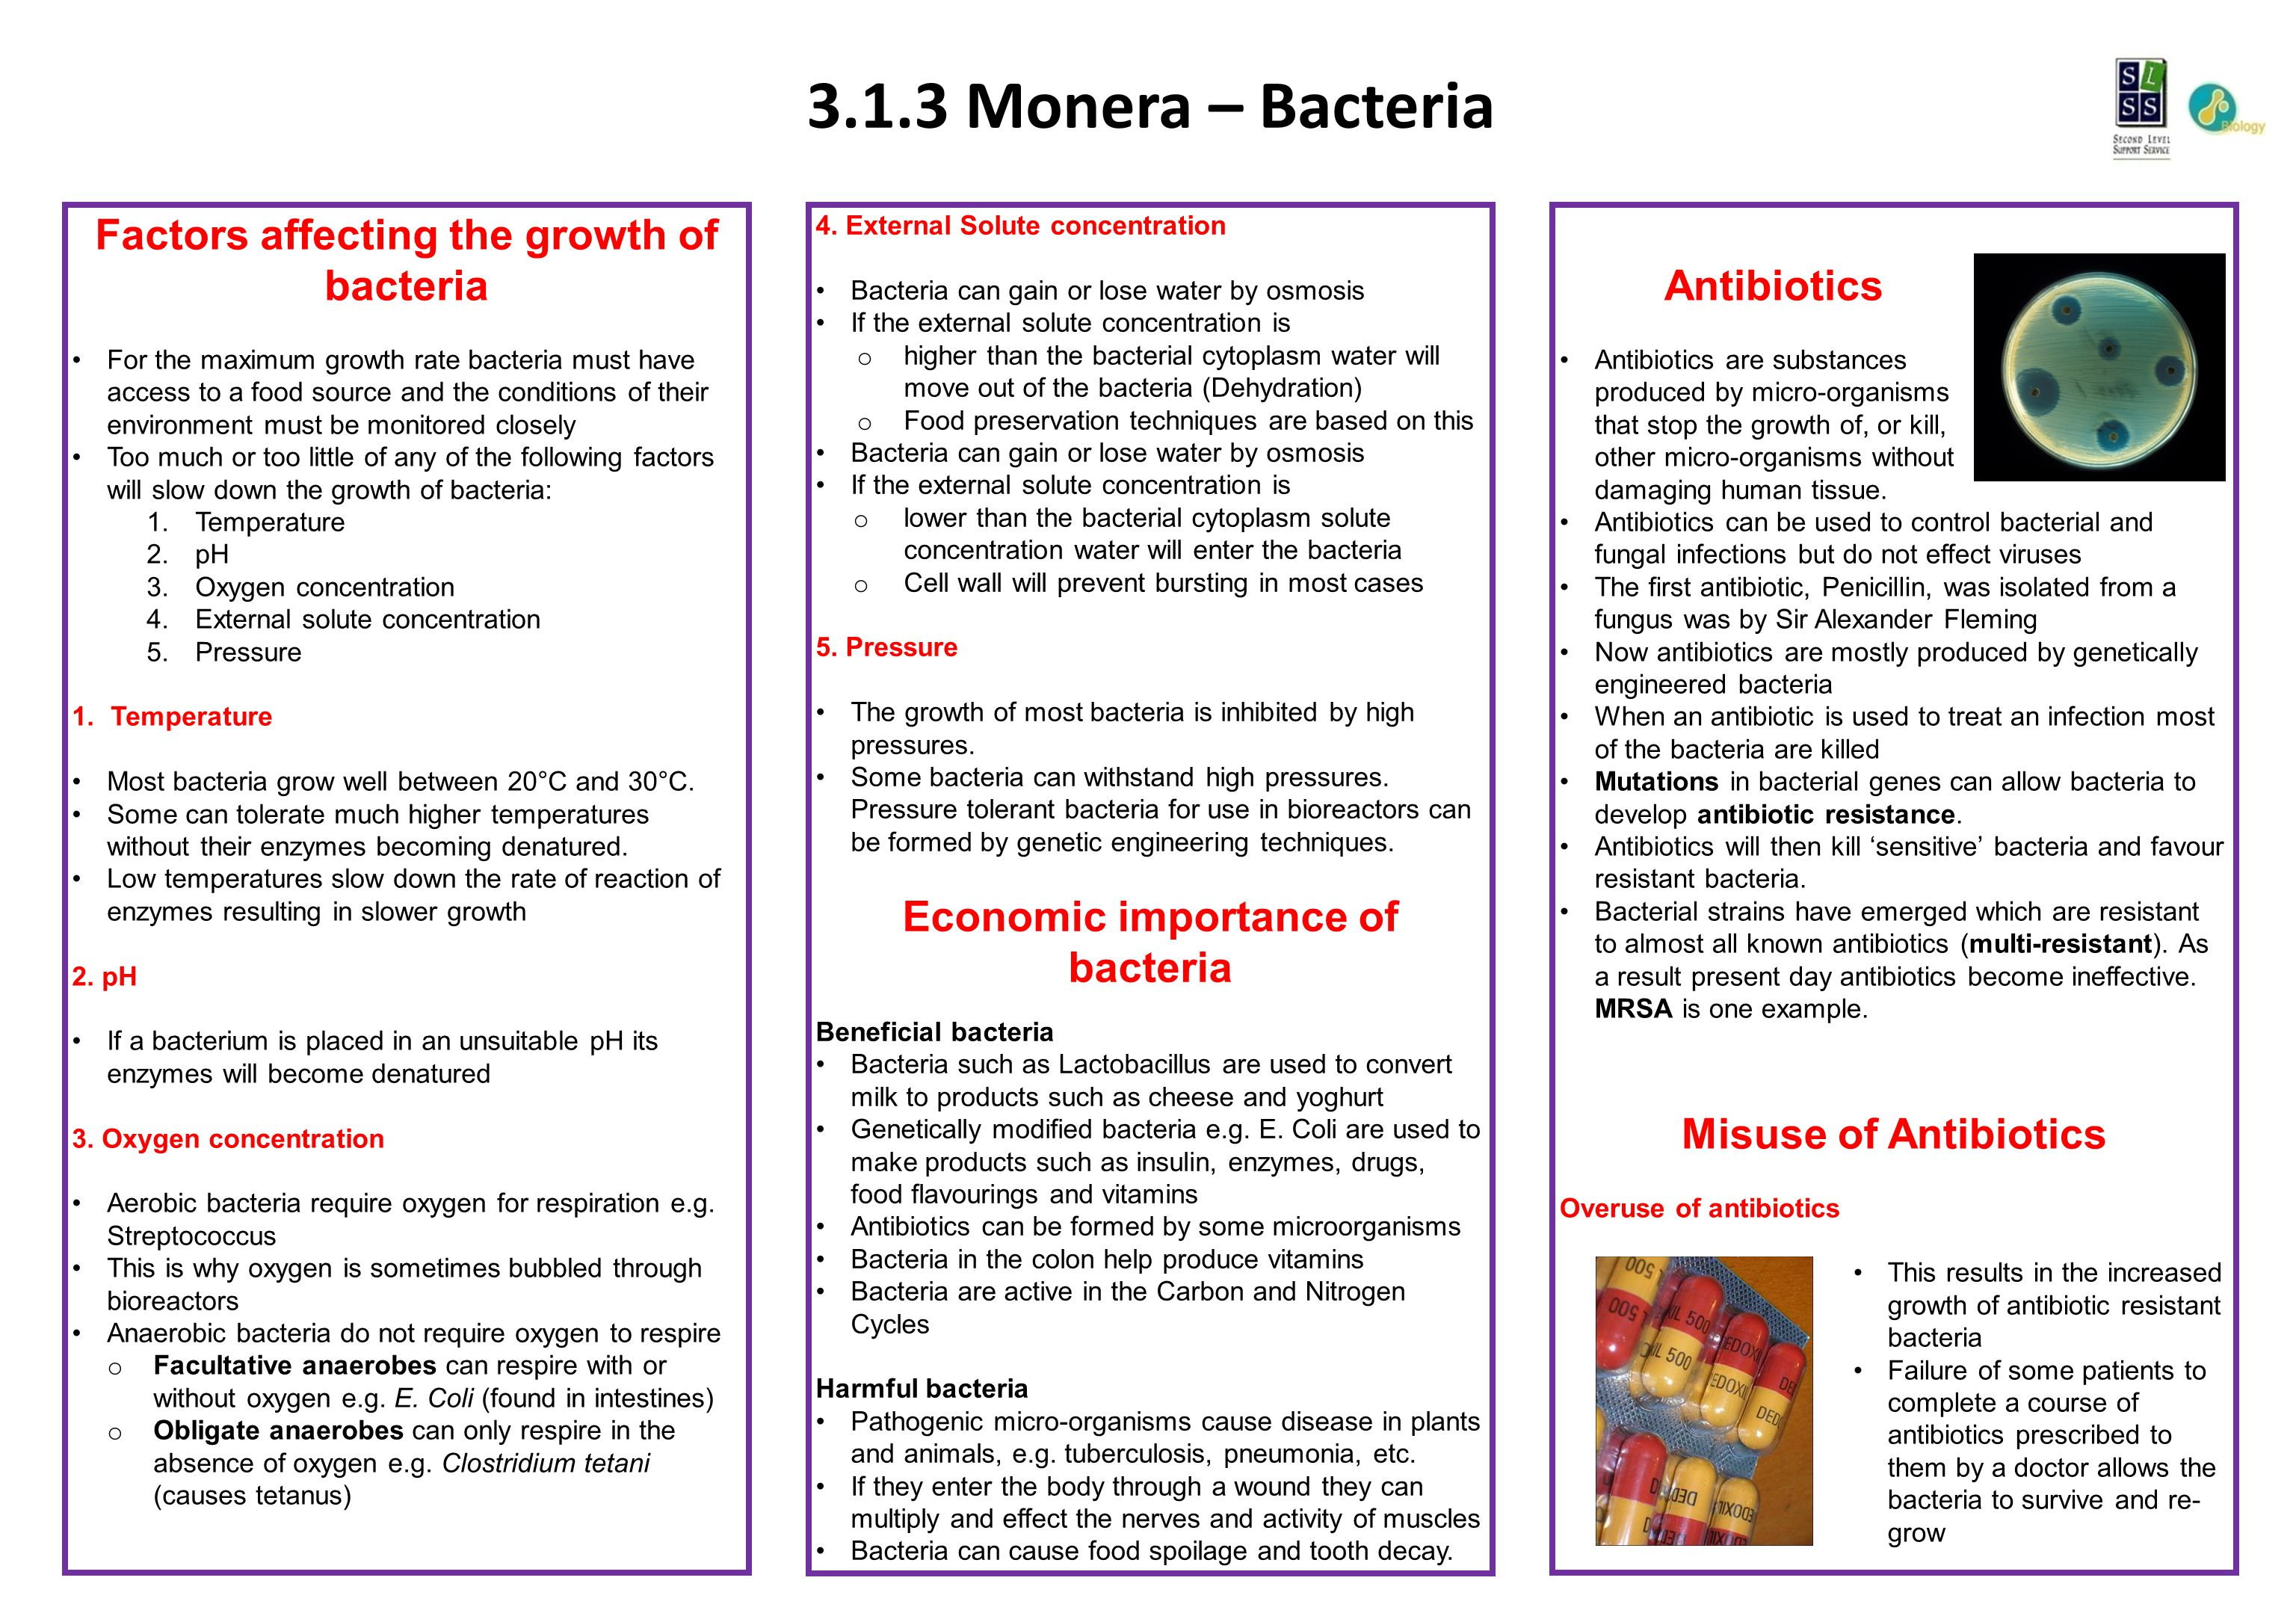 3.1.3 Monera – Bacteria 4. External Solute concentration Bacteria can gain or lose water by osmosis If the external solute concentration is o higher t